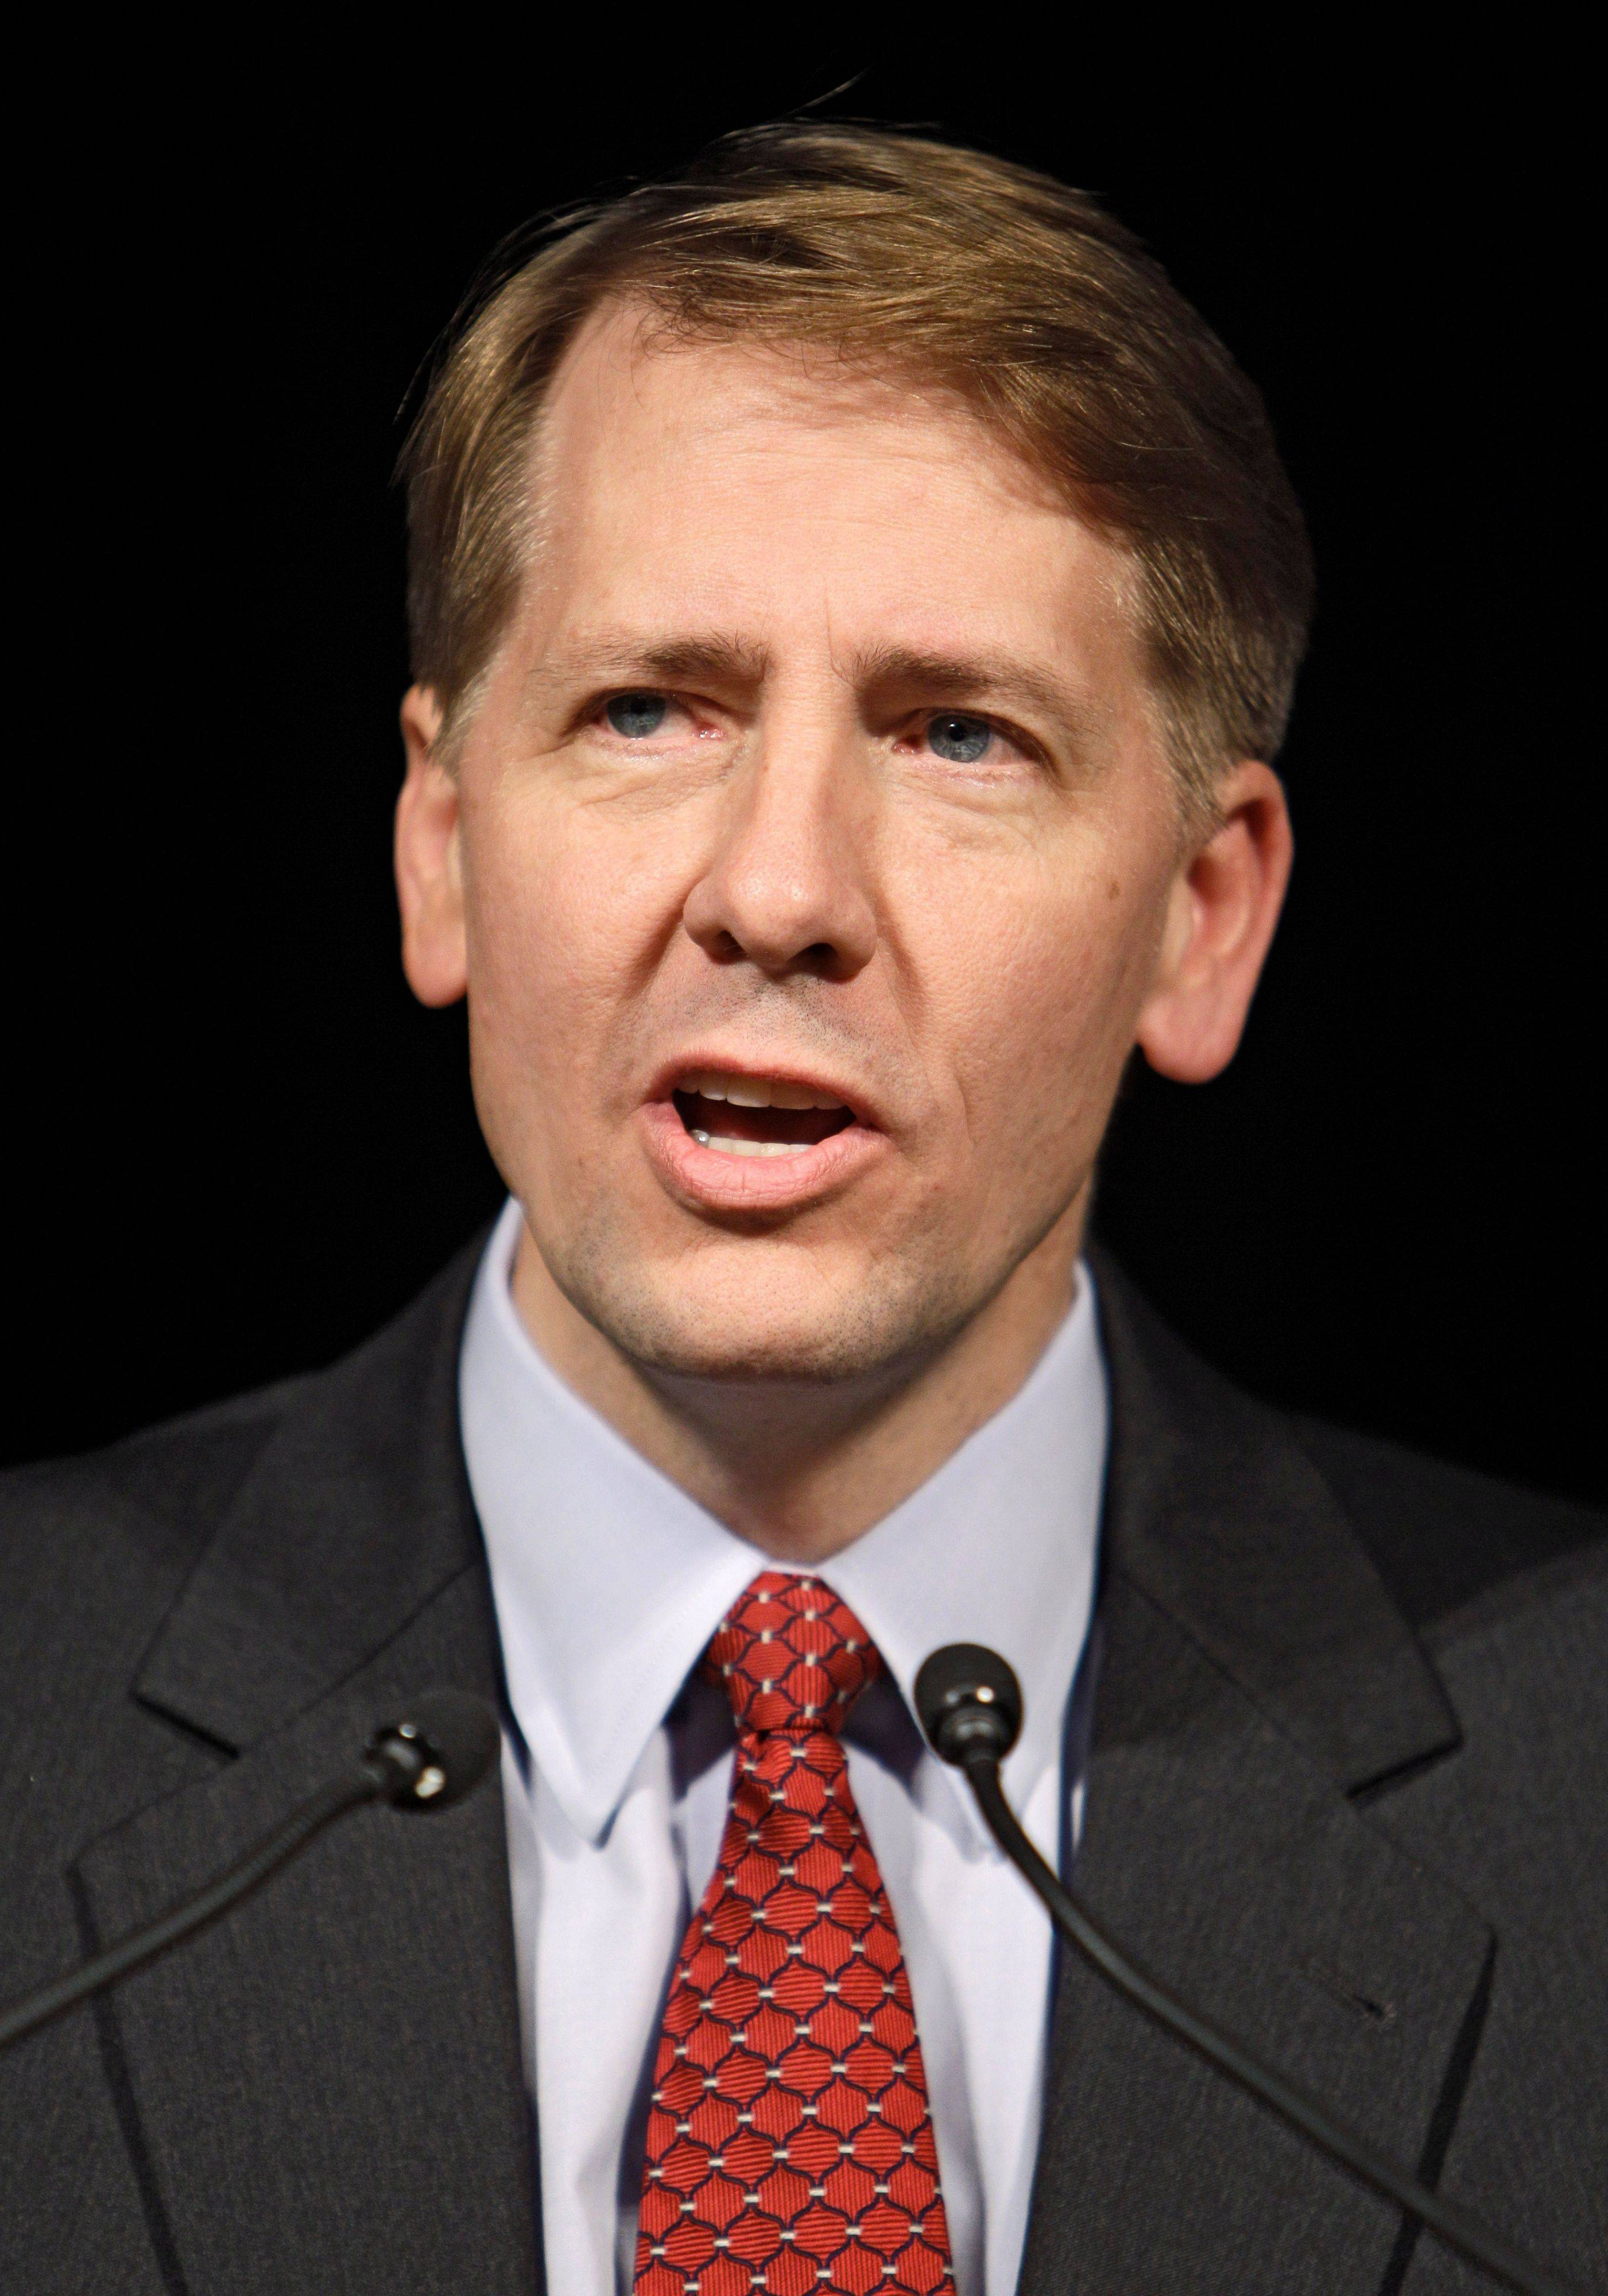 President Barack Obama intends to nominate former Ohio Attorney General Richard Cordray, shown, to head a new consumer financial protection bureau, a central feature of a law that overhauled banking regulations.